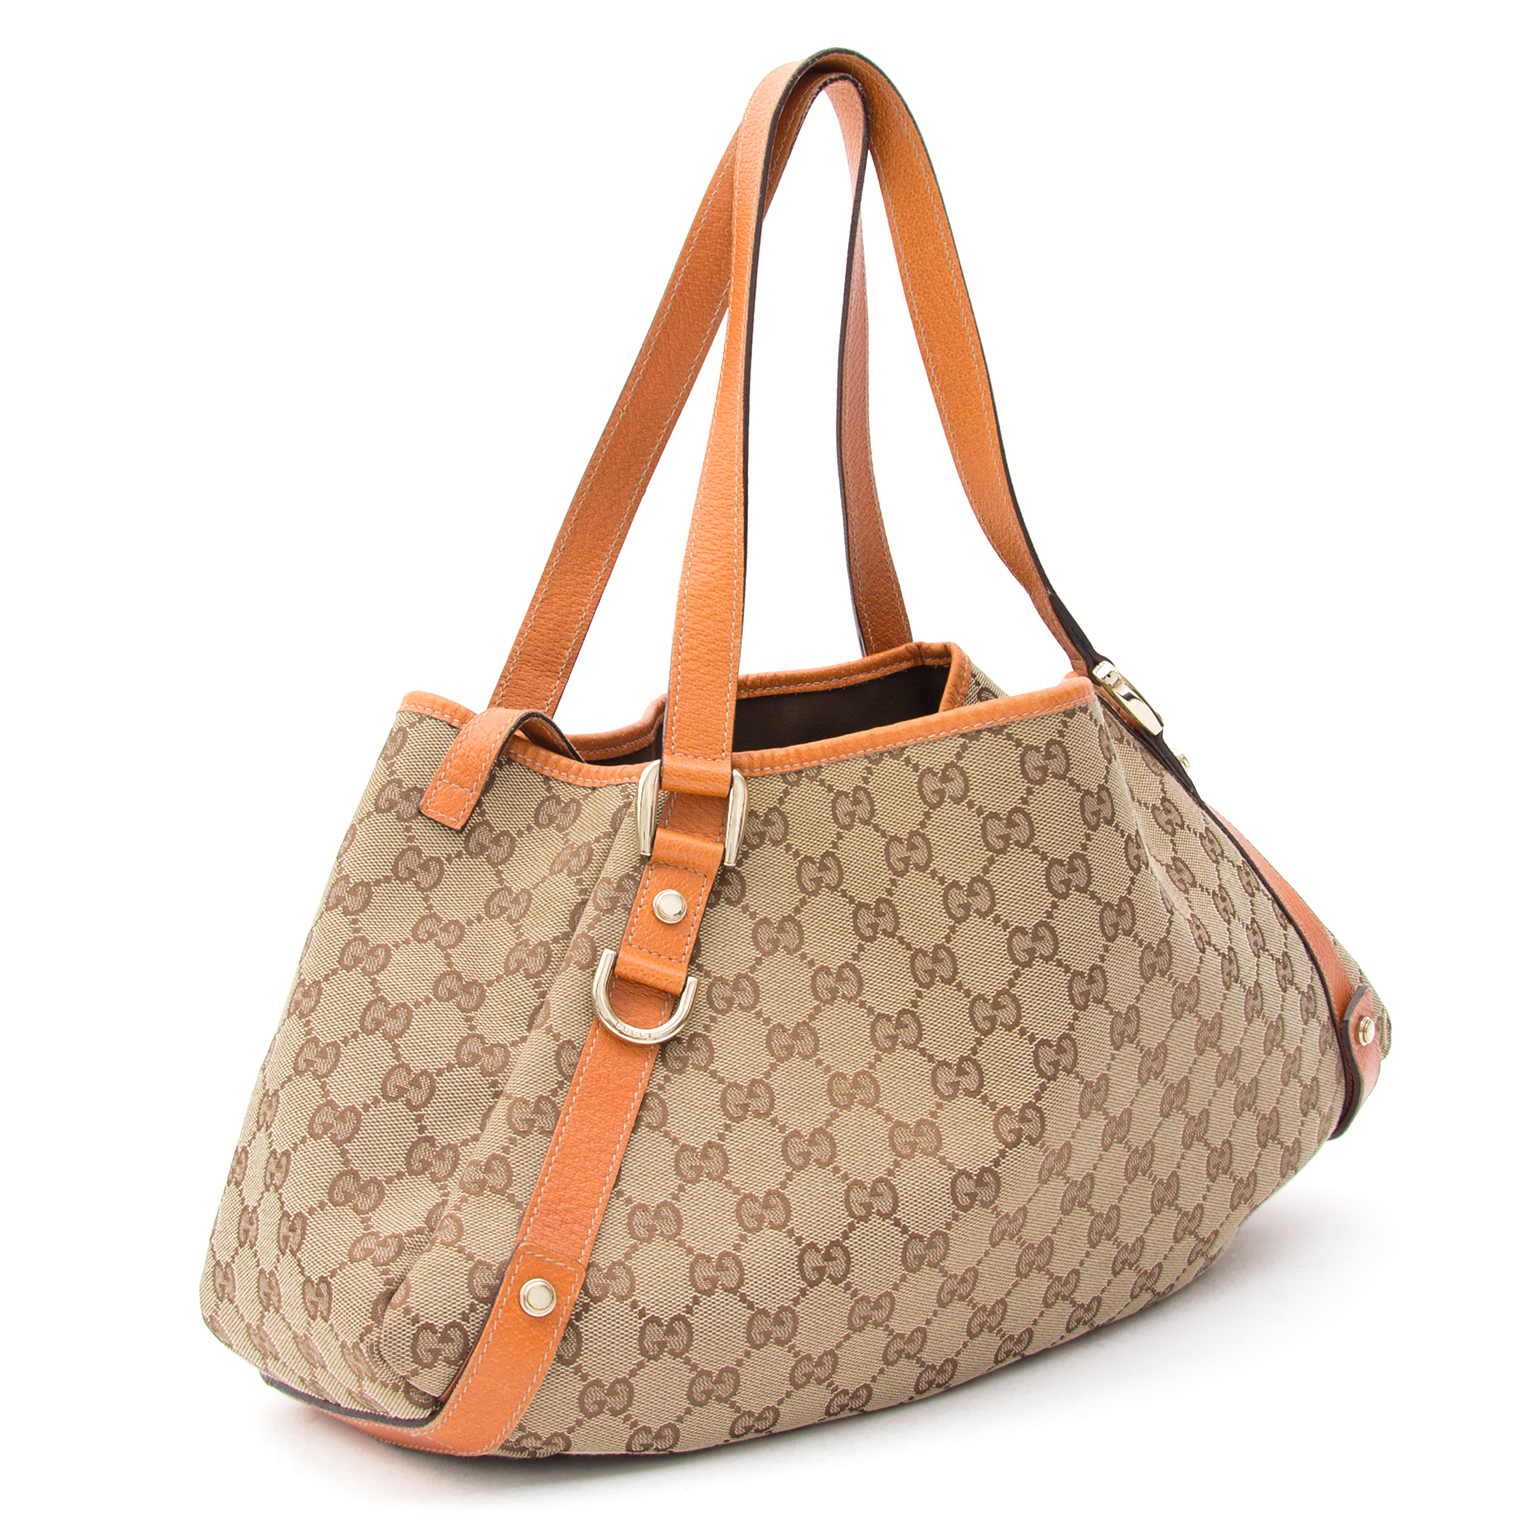 48a92abf1 Buy authentic secondhand Gucci bags at Gucci monogram abbey shoulder bag  secondhand for the best price at Labellov designer consignment shop in